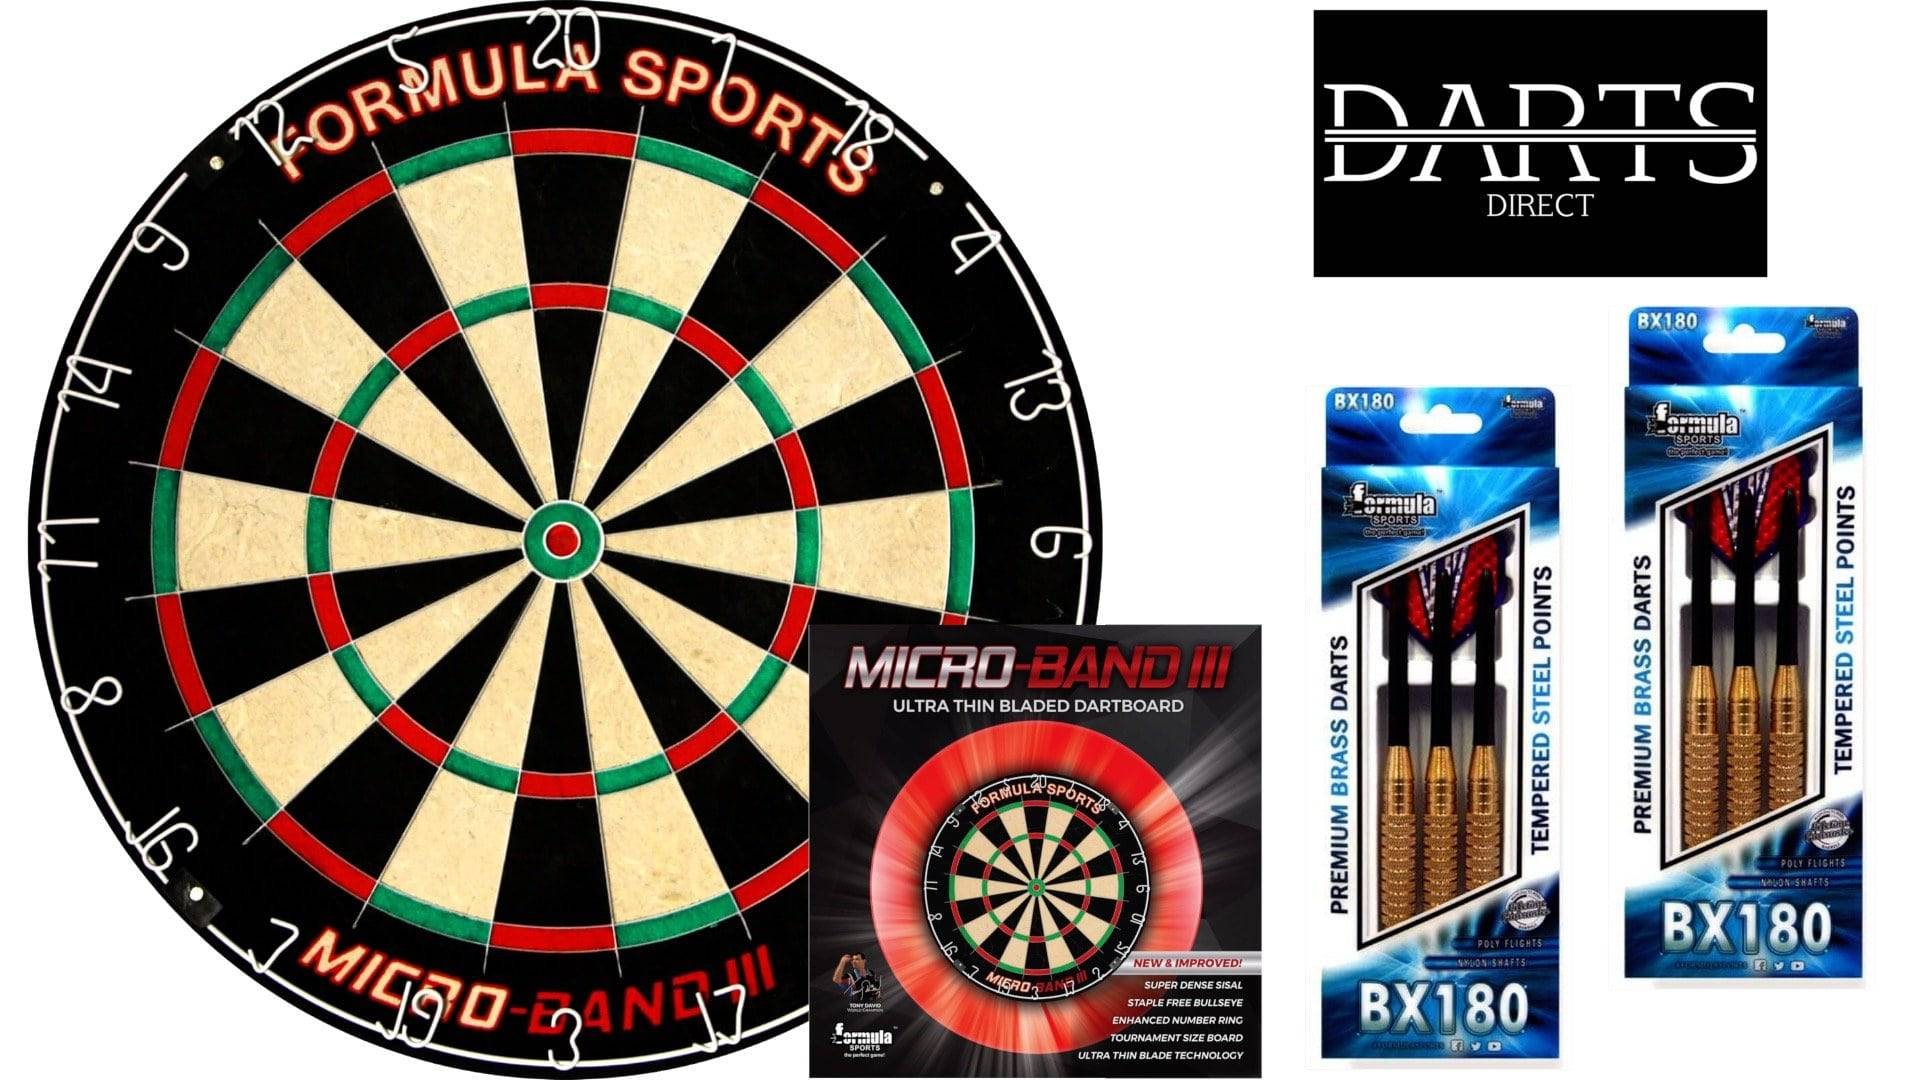 Formula Micro band 3 Dartboard & Premium Brass Darts Pack - Darts Direct